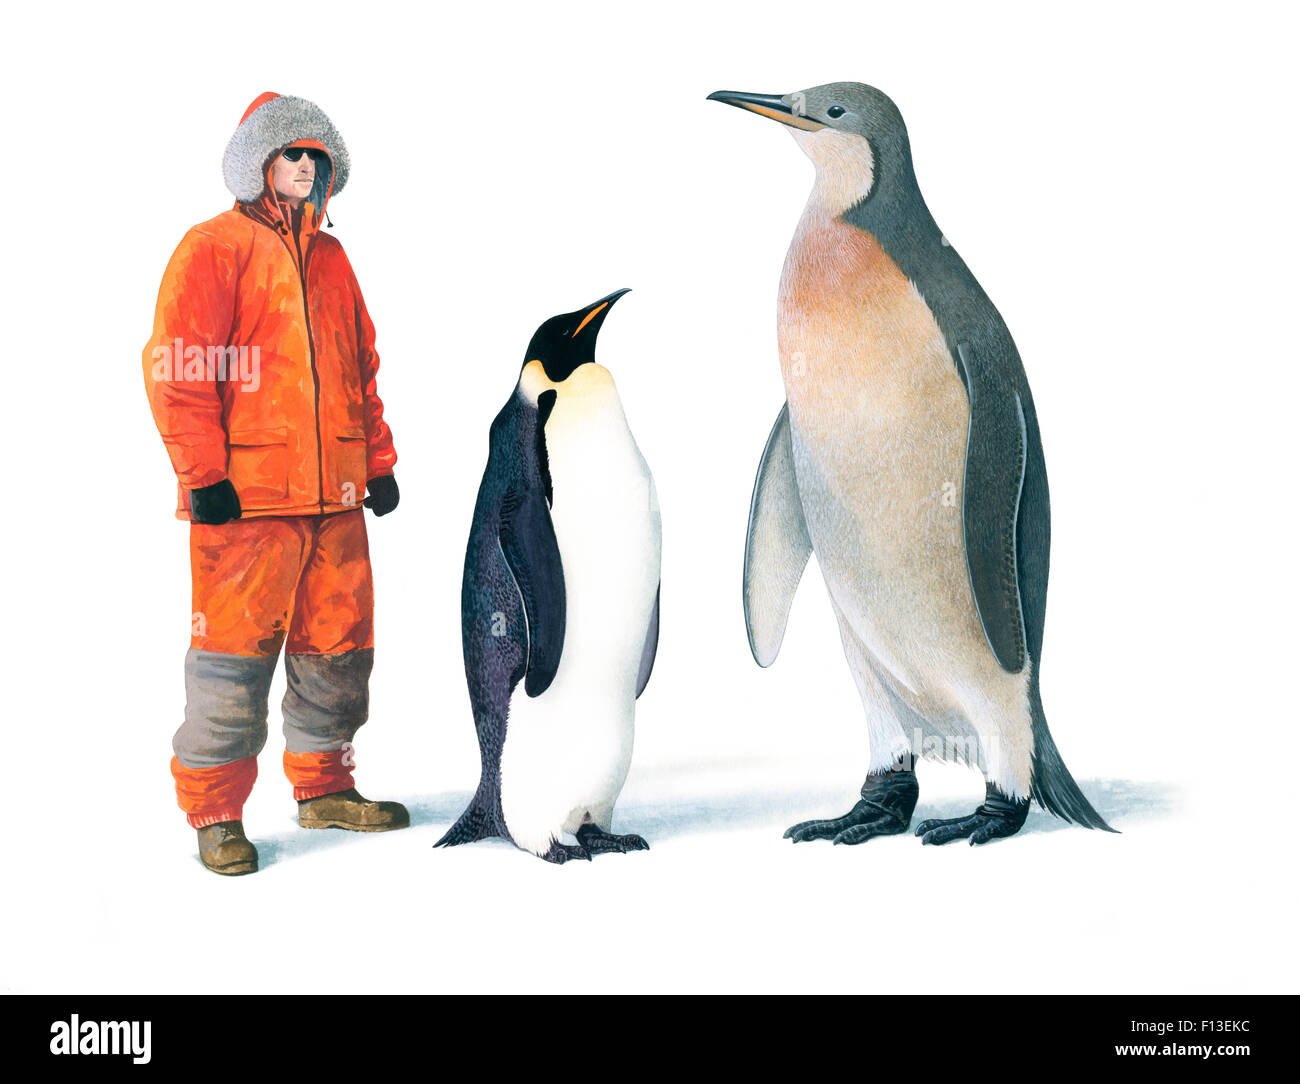 Emperor penguin size comparison - photo#9